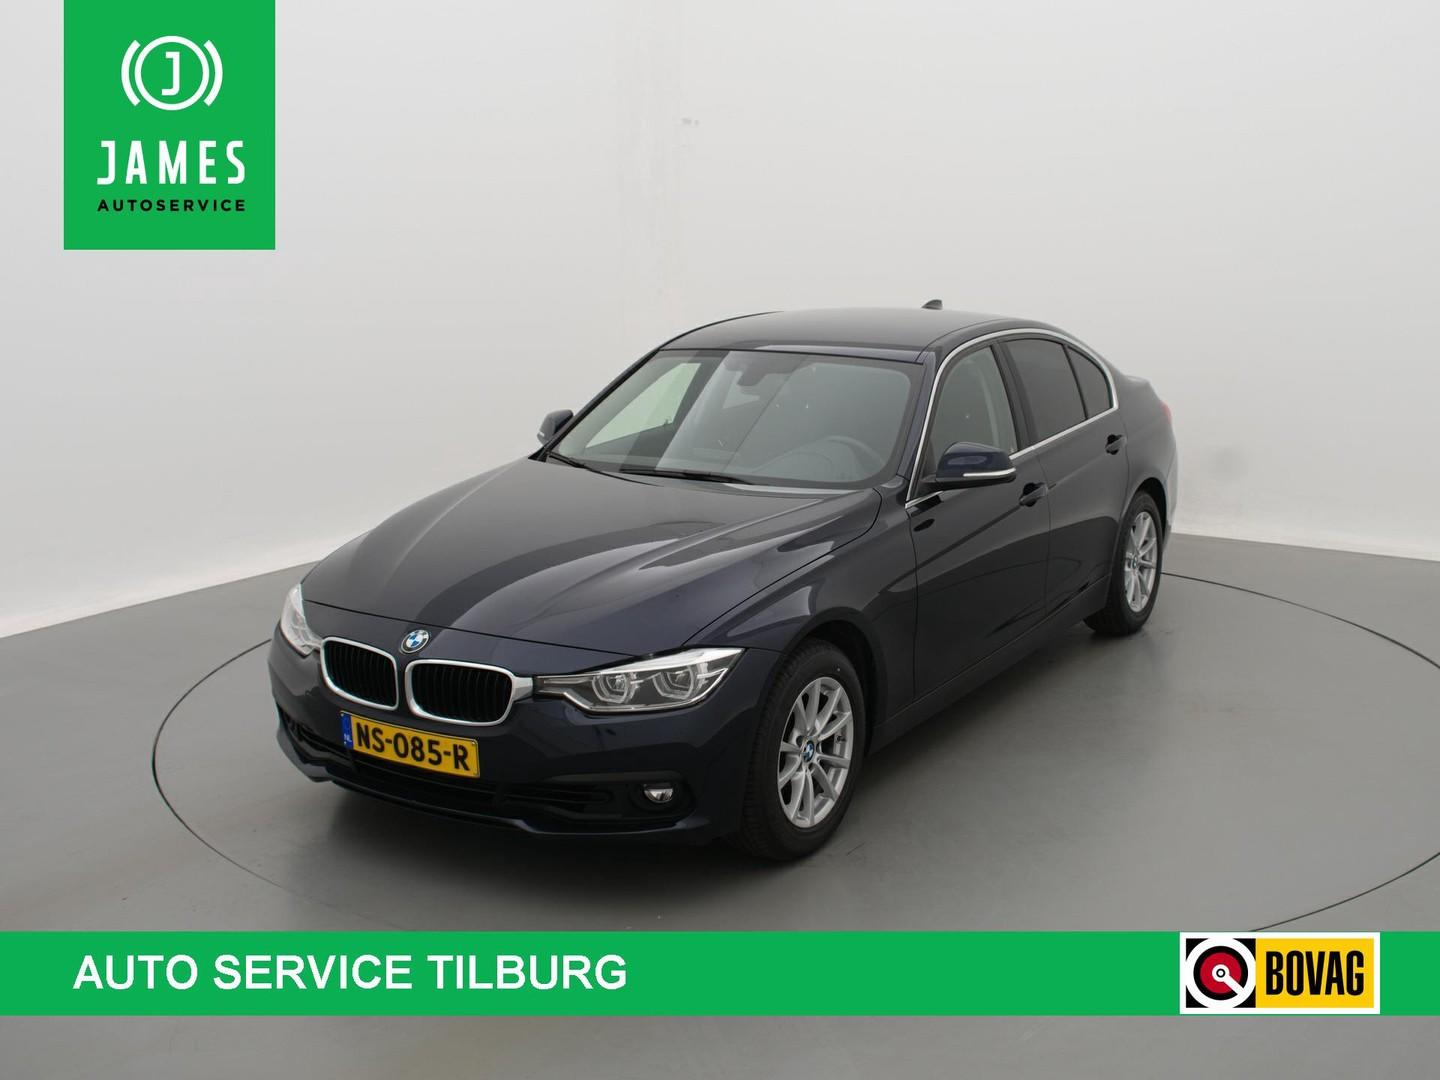 Bmw 3 serie 318i executive autom. navi clima full-led privacy-glass